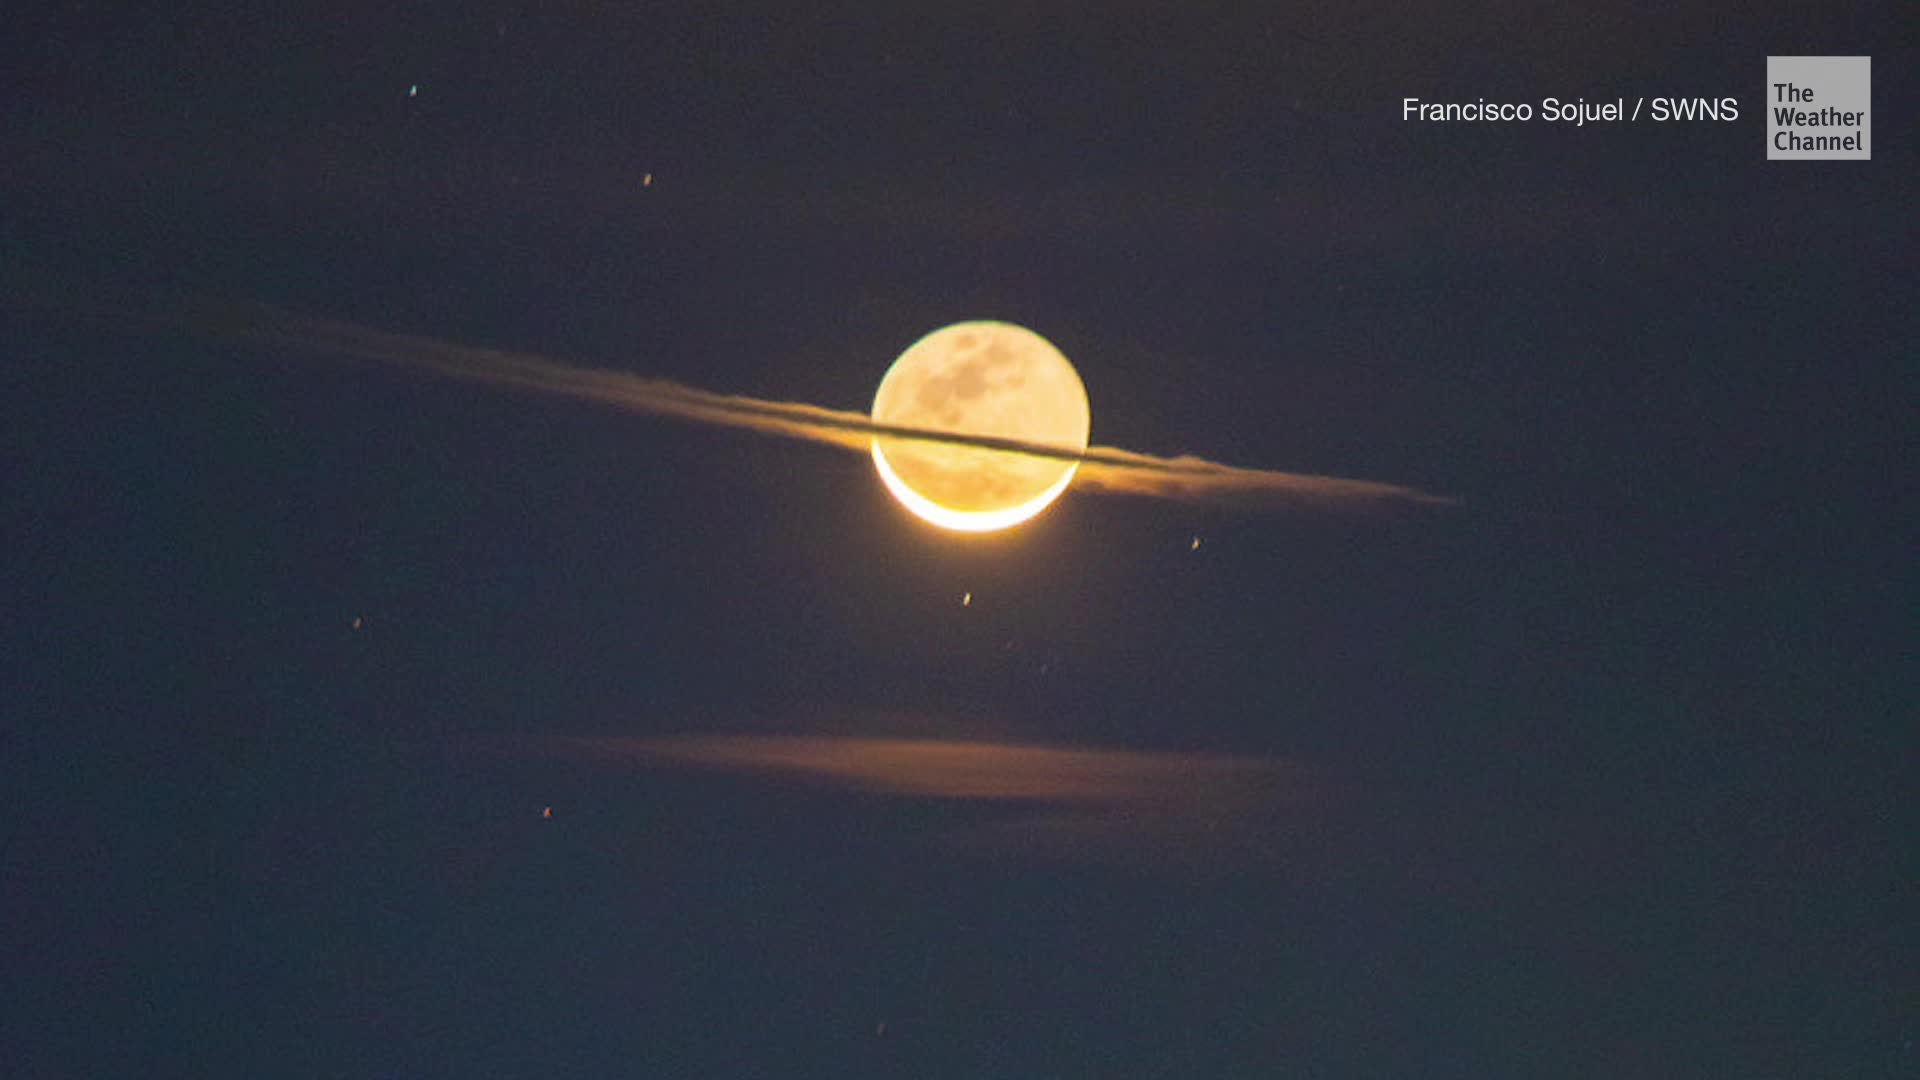 Clouds and timing of the sunrise made the moon appear to have rings just like Saturn.